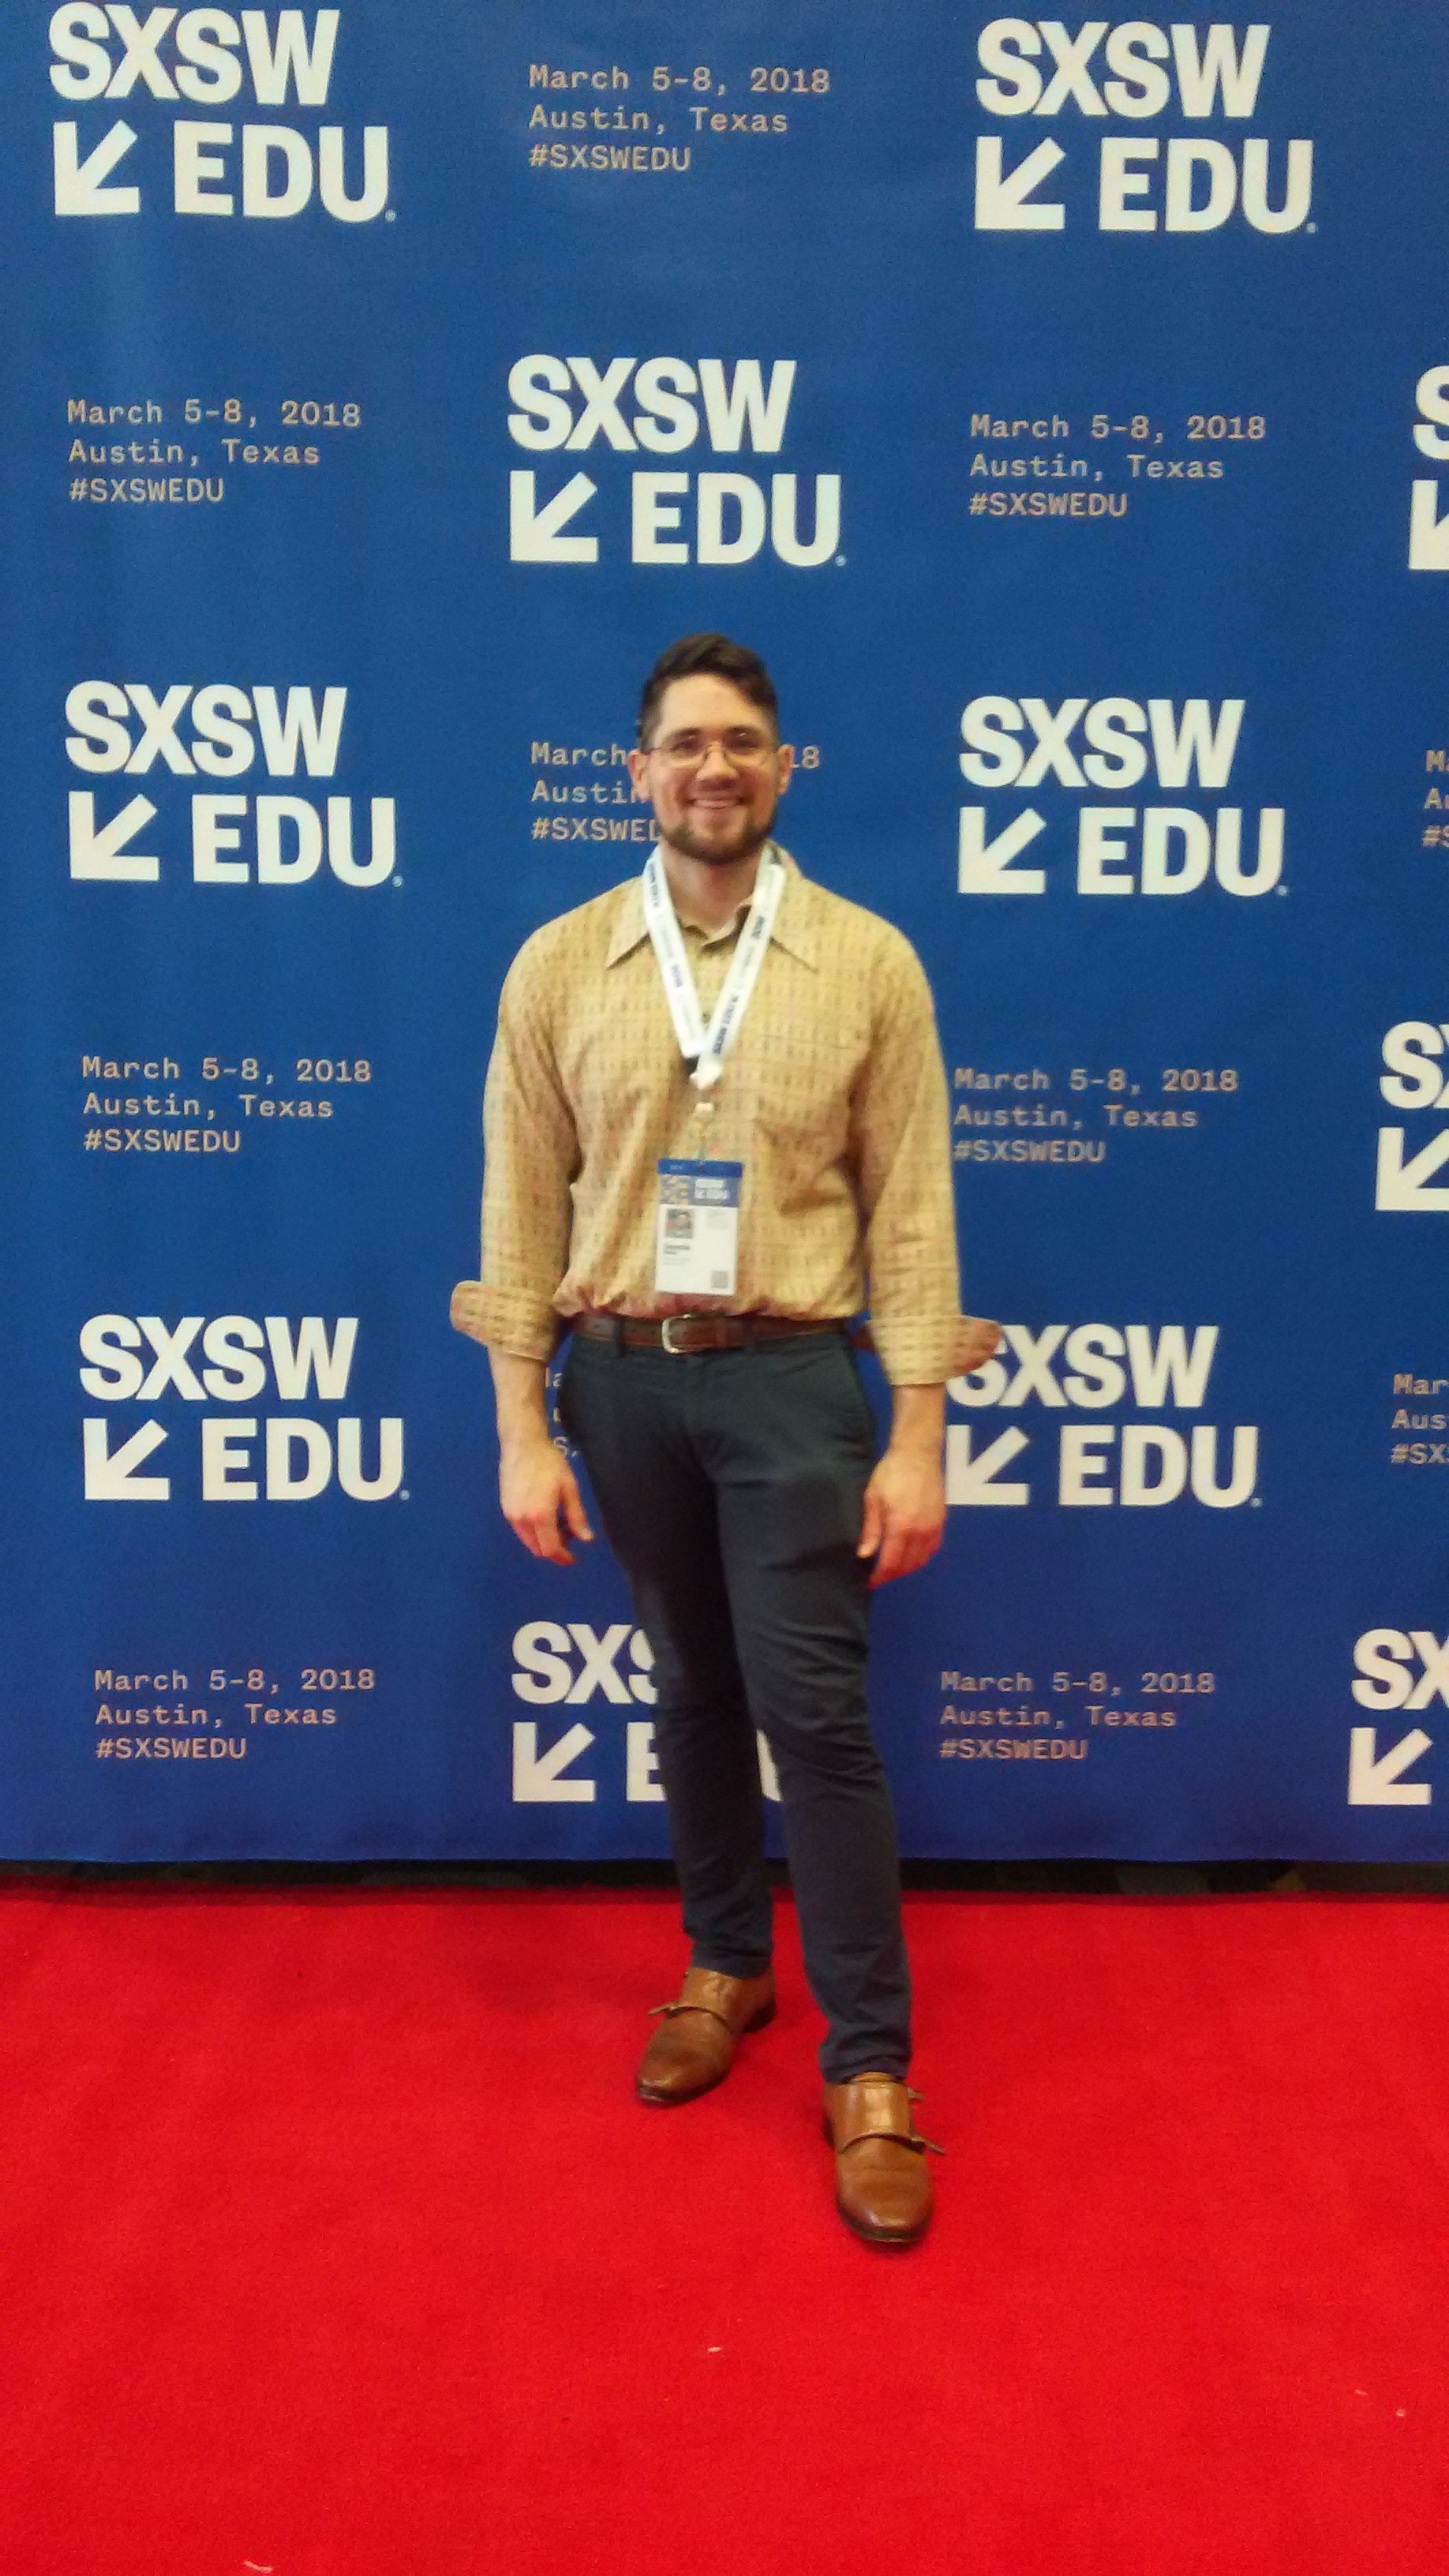 Donnie Welch a young white male with brown hair, a beard, and glasses stands on a red carpet with a blue banner for SXSWedu 2018 behind him. The blue banner his SXSWedu 2018 and the event details in white-yellow hued text. Welch is wearing tan dress shoes, blue pants and a paisley shirt.